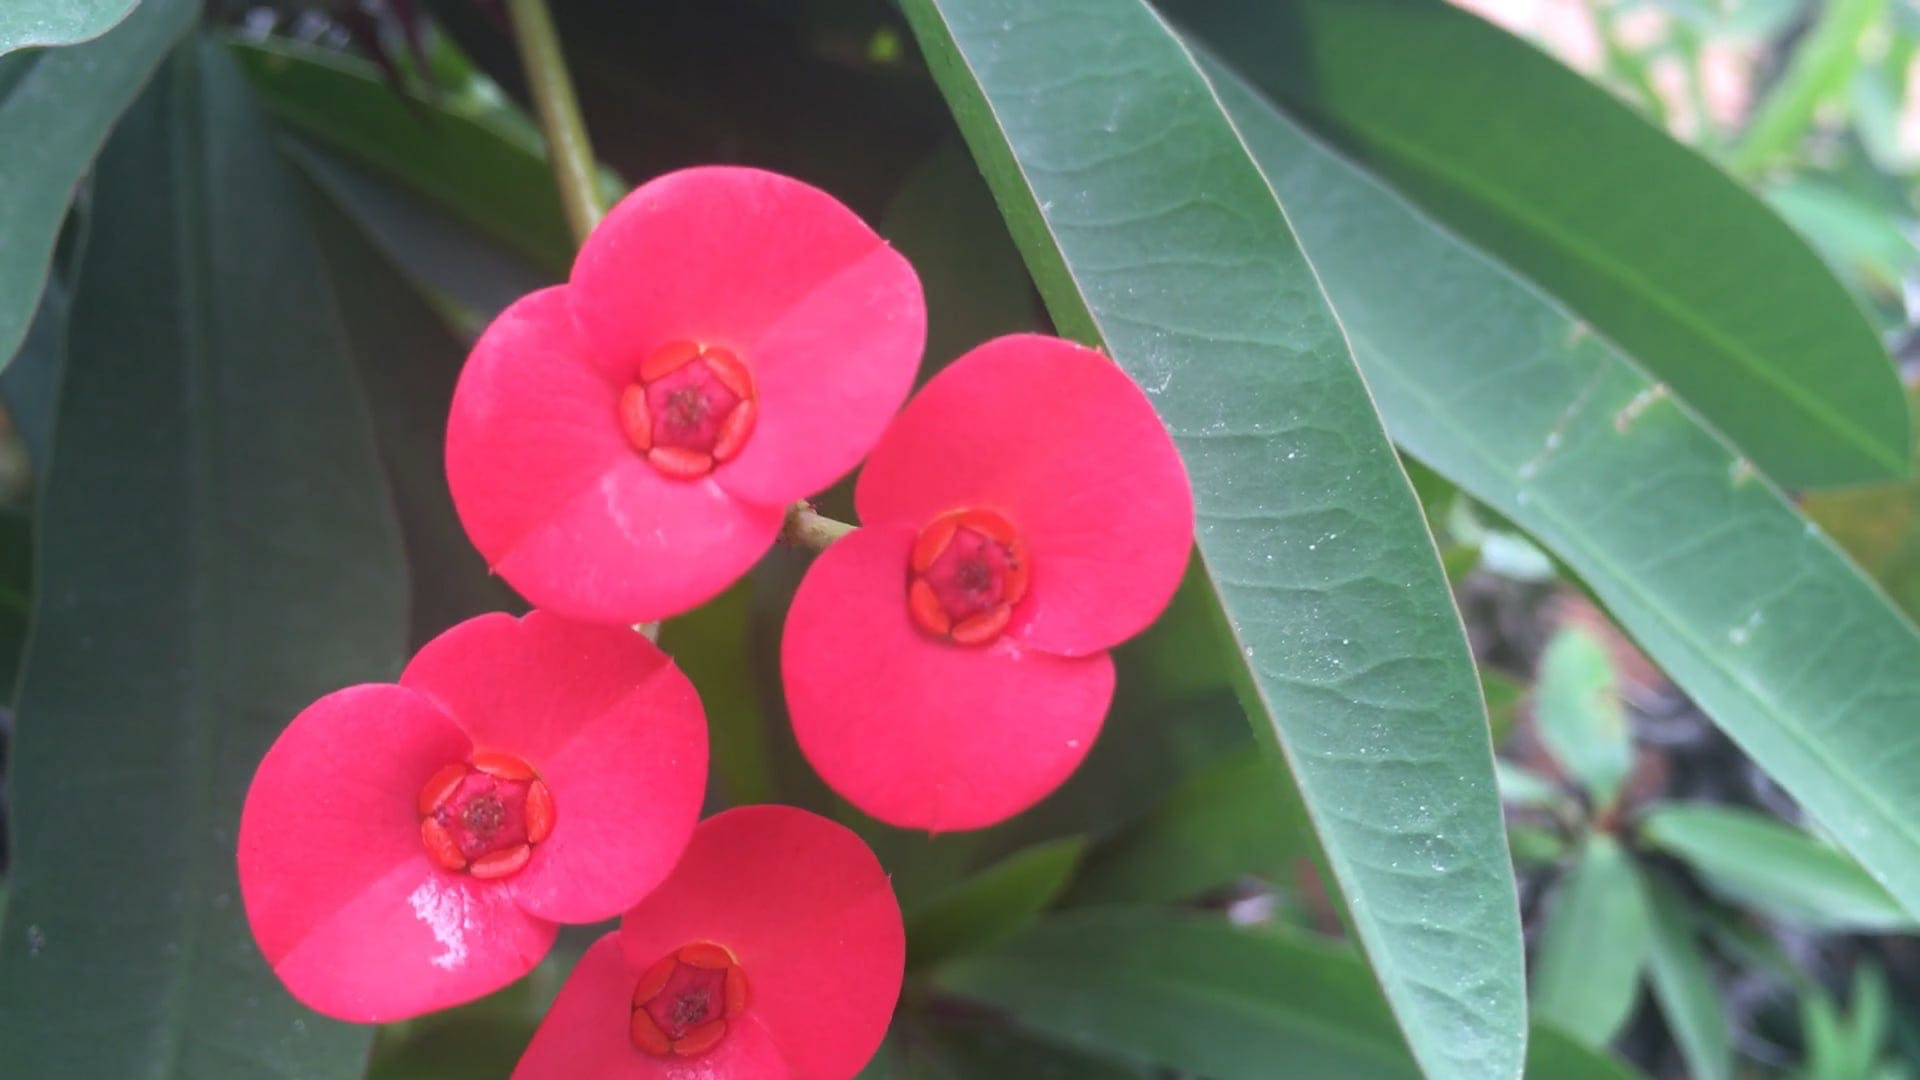 Small Pink Flowers In Bloom